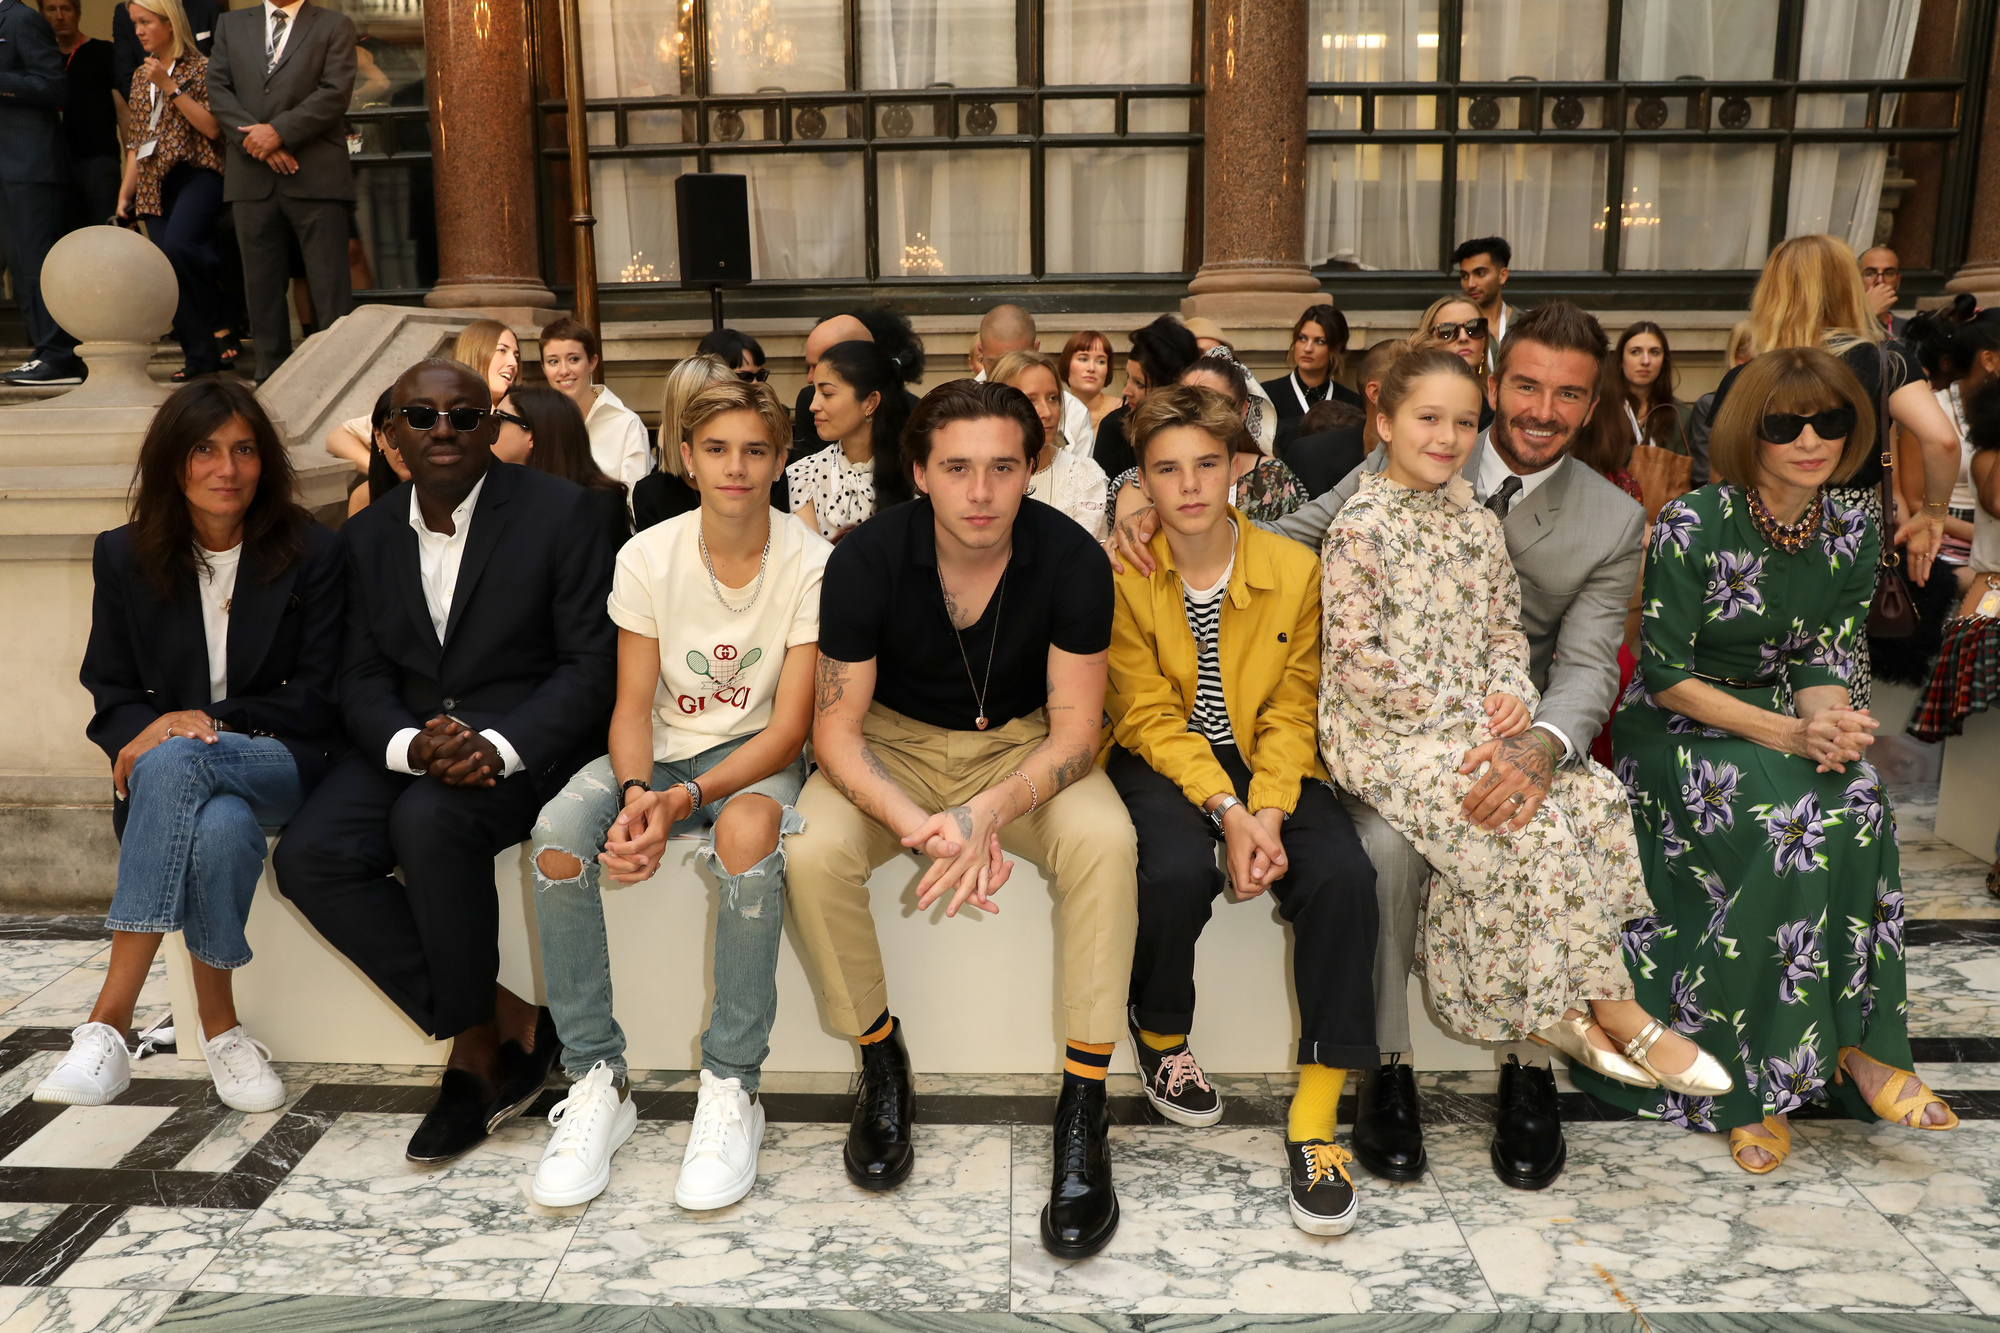 Romeo Beckham, Brooklyn Beckham, Cruz Beckham, Harper Beckham, David Beckham en Anna Wintour tijdens de show van Victoria Beckham tijdens de London Fashion Week., Getty Images